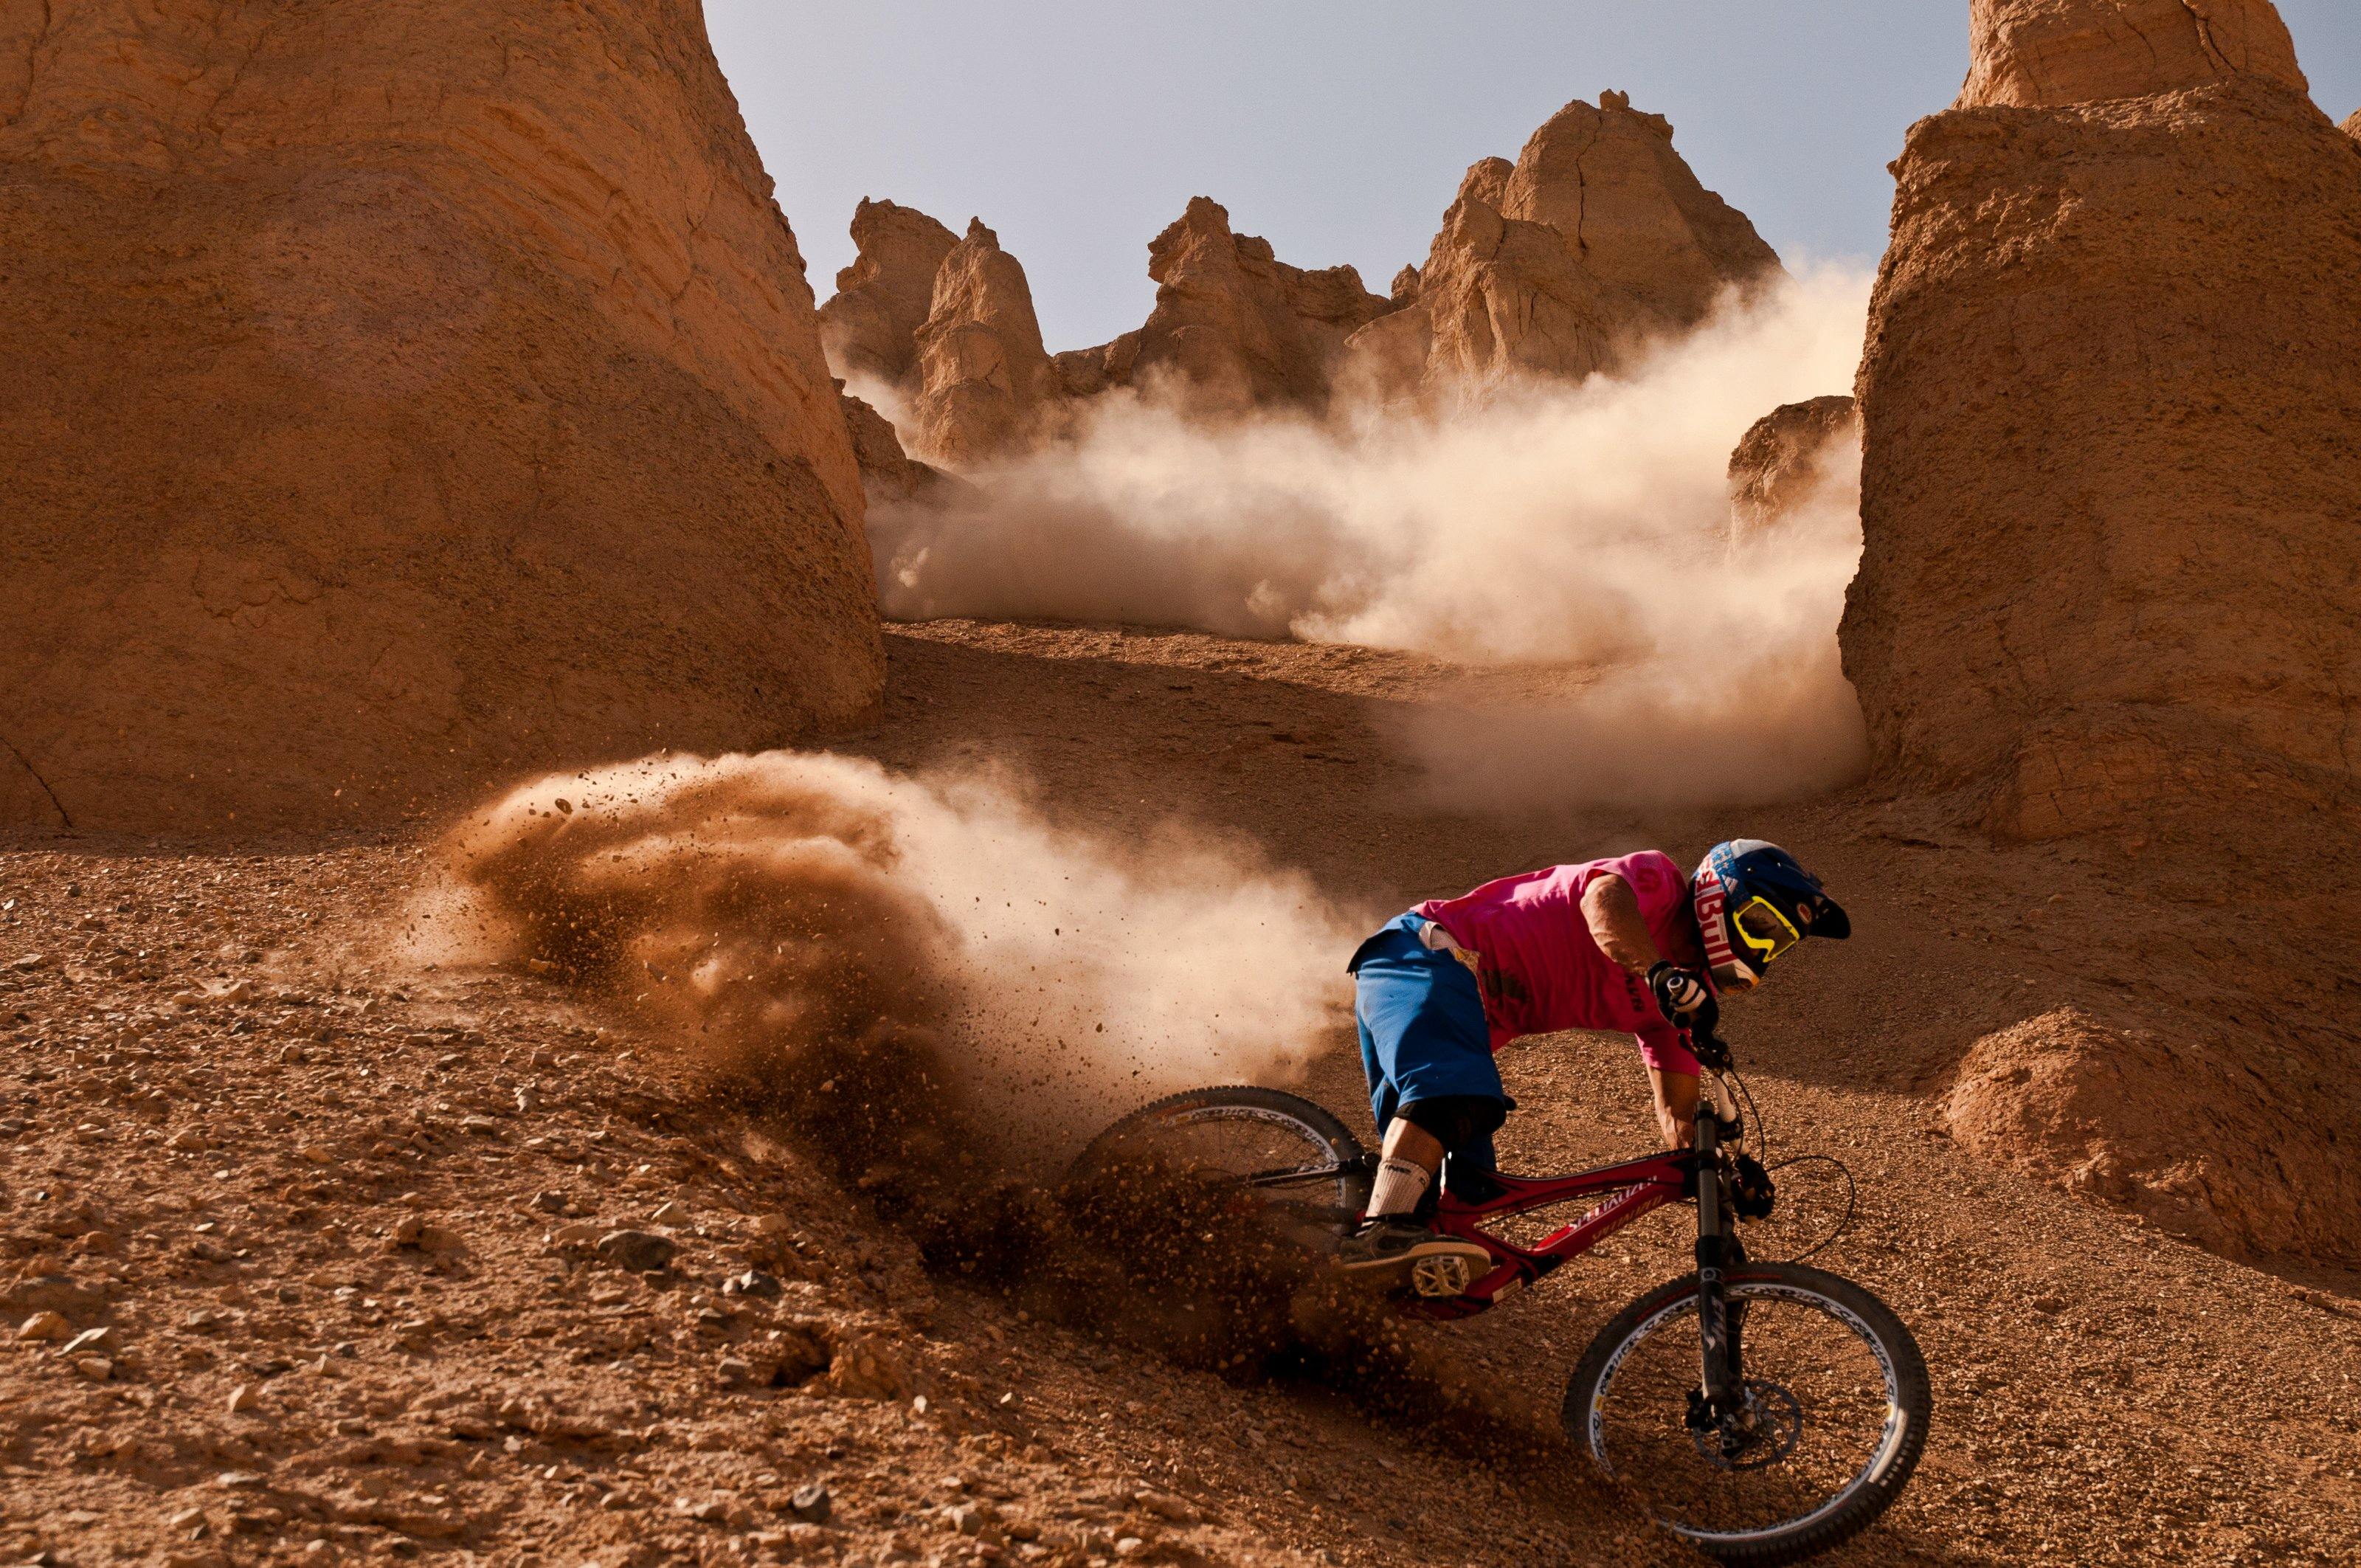 Over A Beer How Bad Is Mountain Biking For The